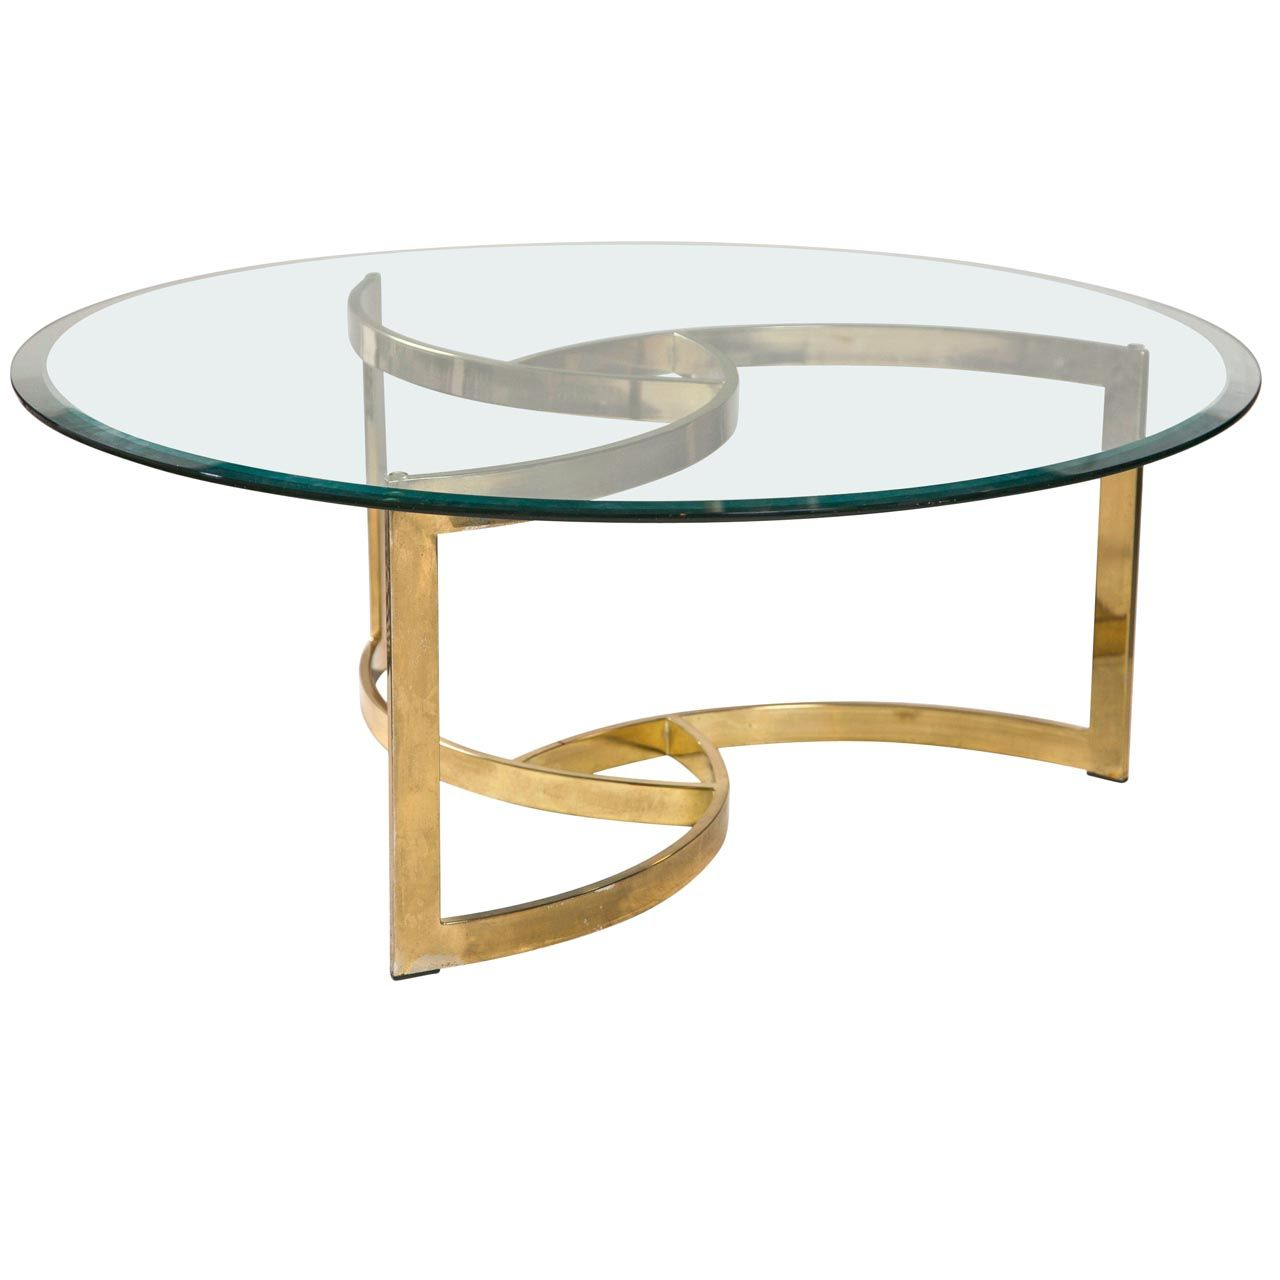 Glass Coffee Table Gold Legs | Coffee Tables | Table, Coffee Table In Elke Glass Console Tables With Brass Base (View 4 of 20)